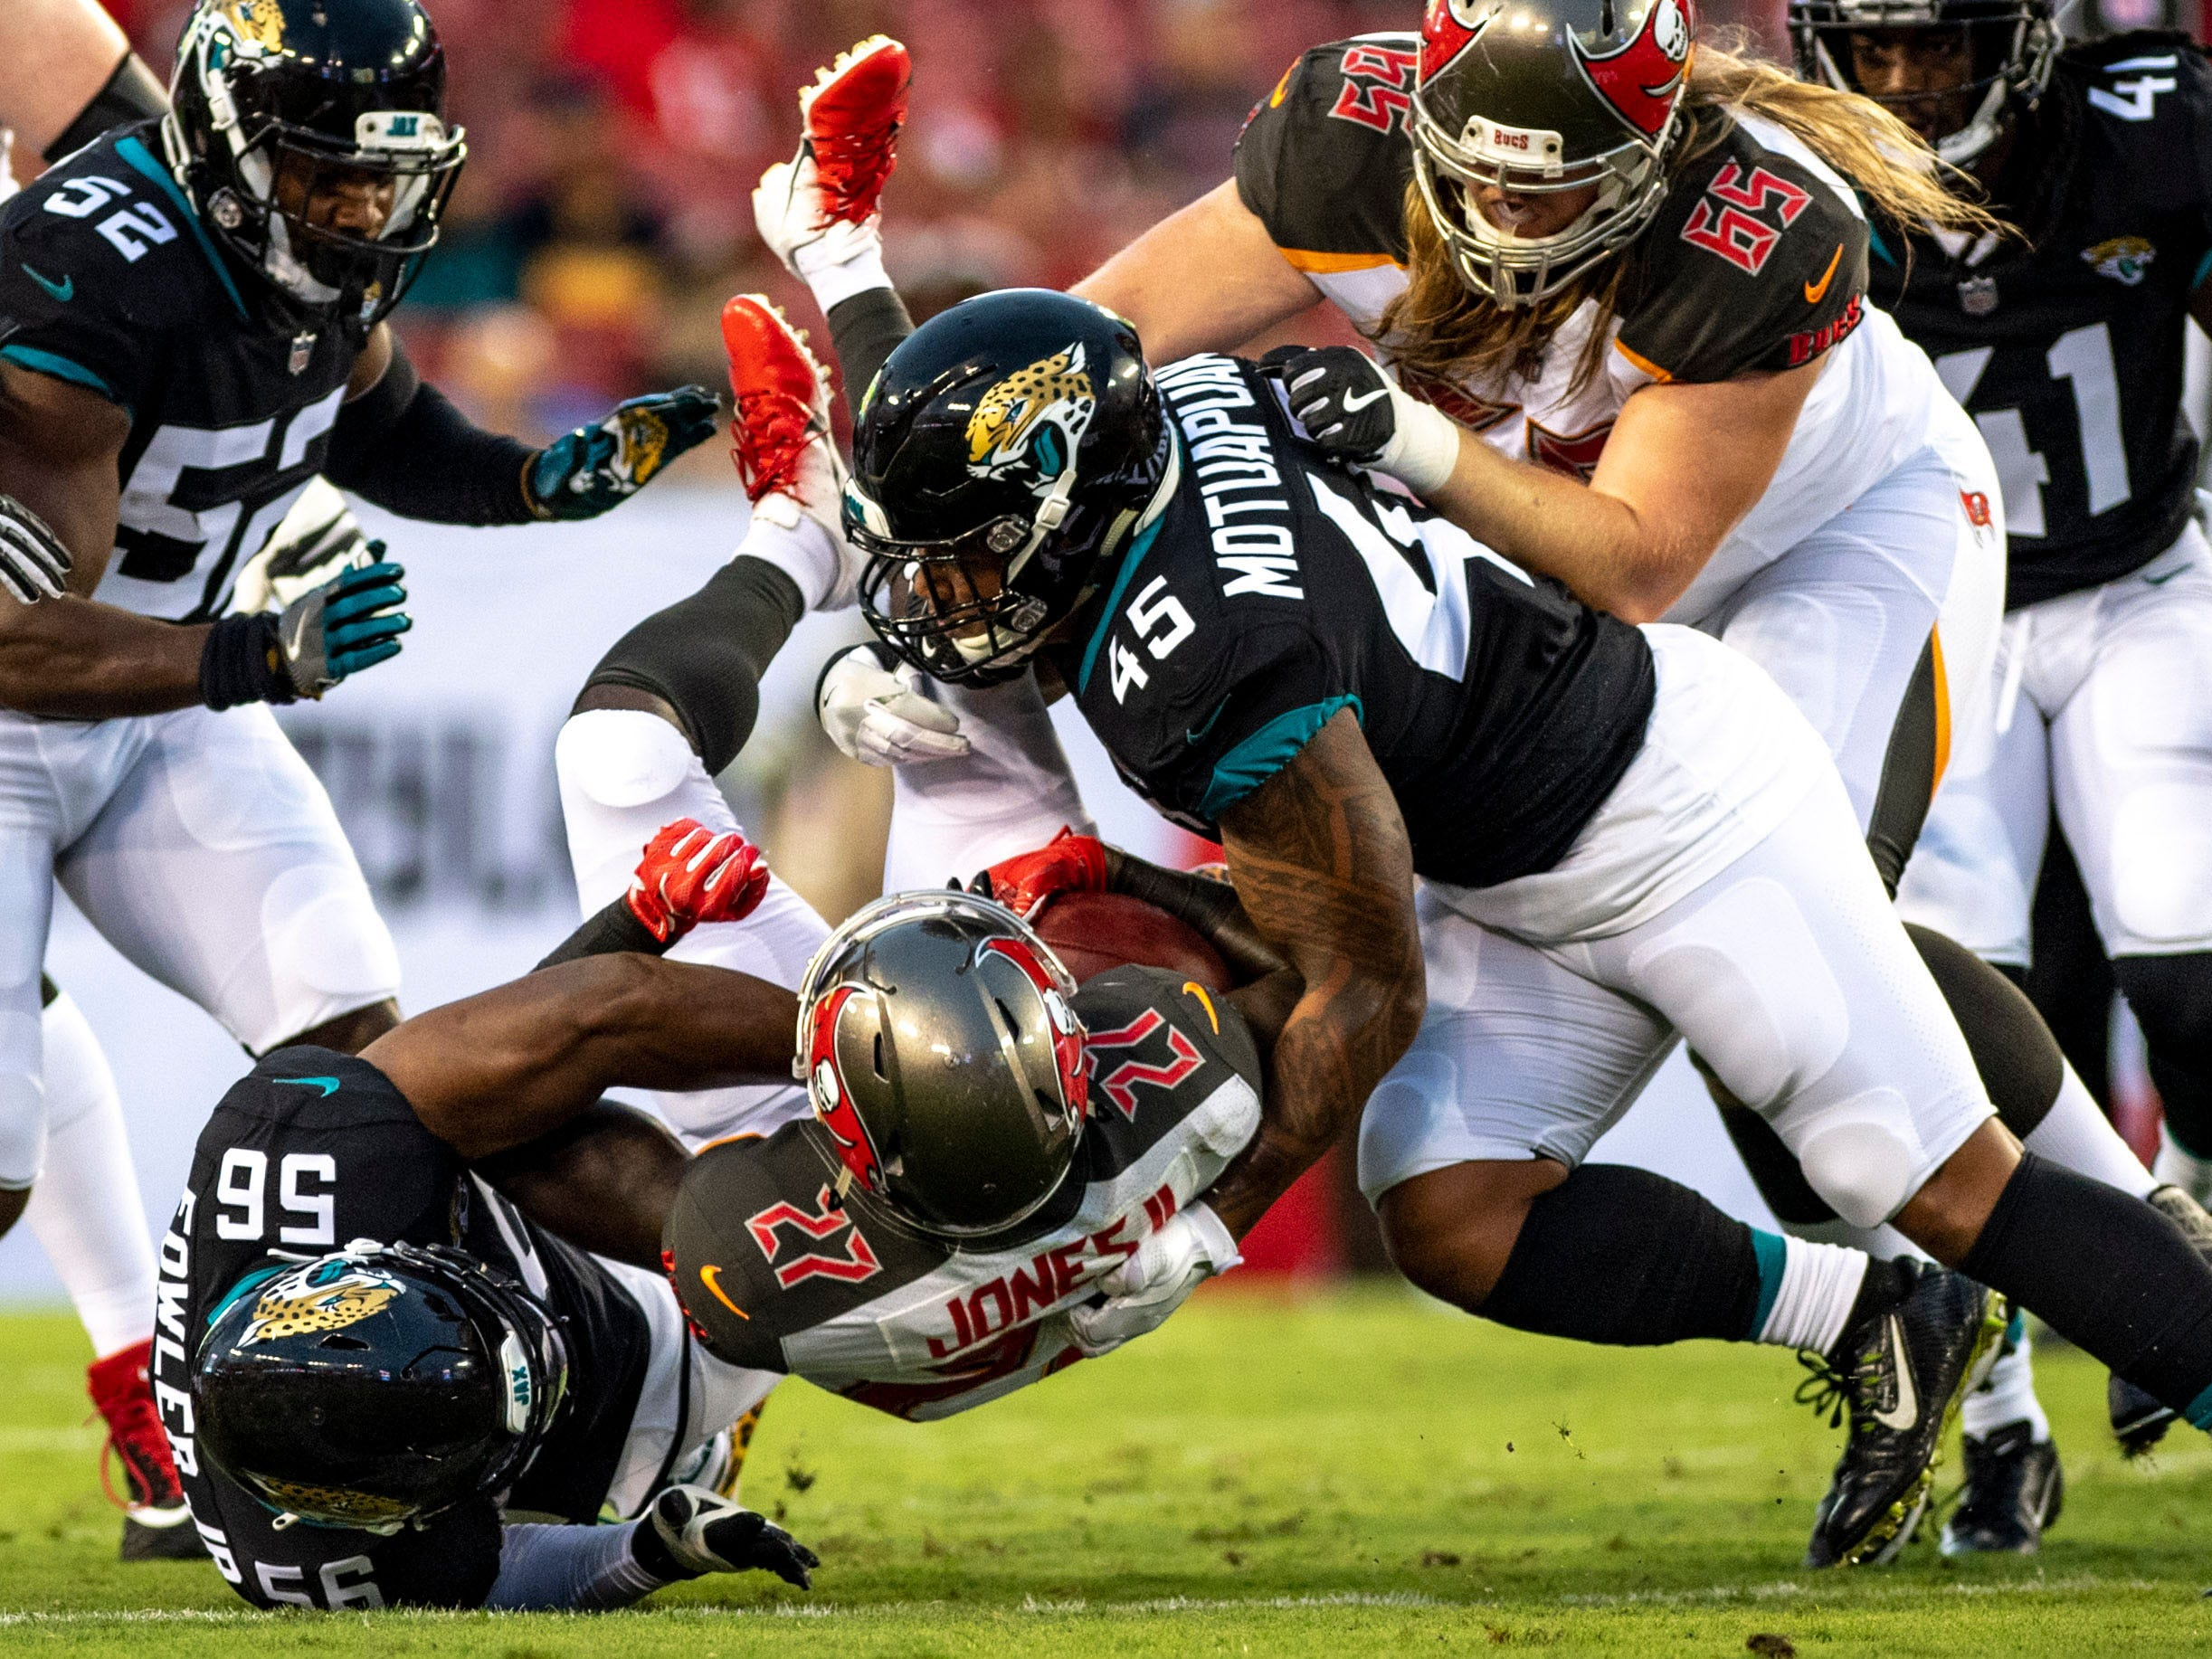 Tampa Bay Buccaneers running back Ronald Jones is tackled after running the ball by Jacksonville Jaguars defensive end Dante Fowler Jr. (56) and linebacker Andrew Motuapuaka (45) during the first half at Raymond James Stadium.